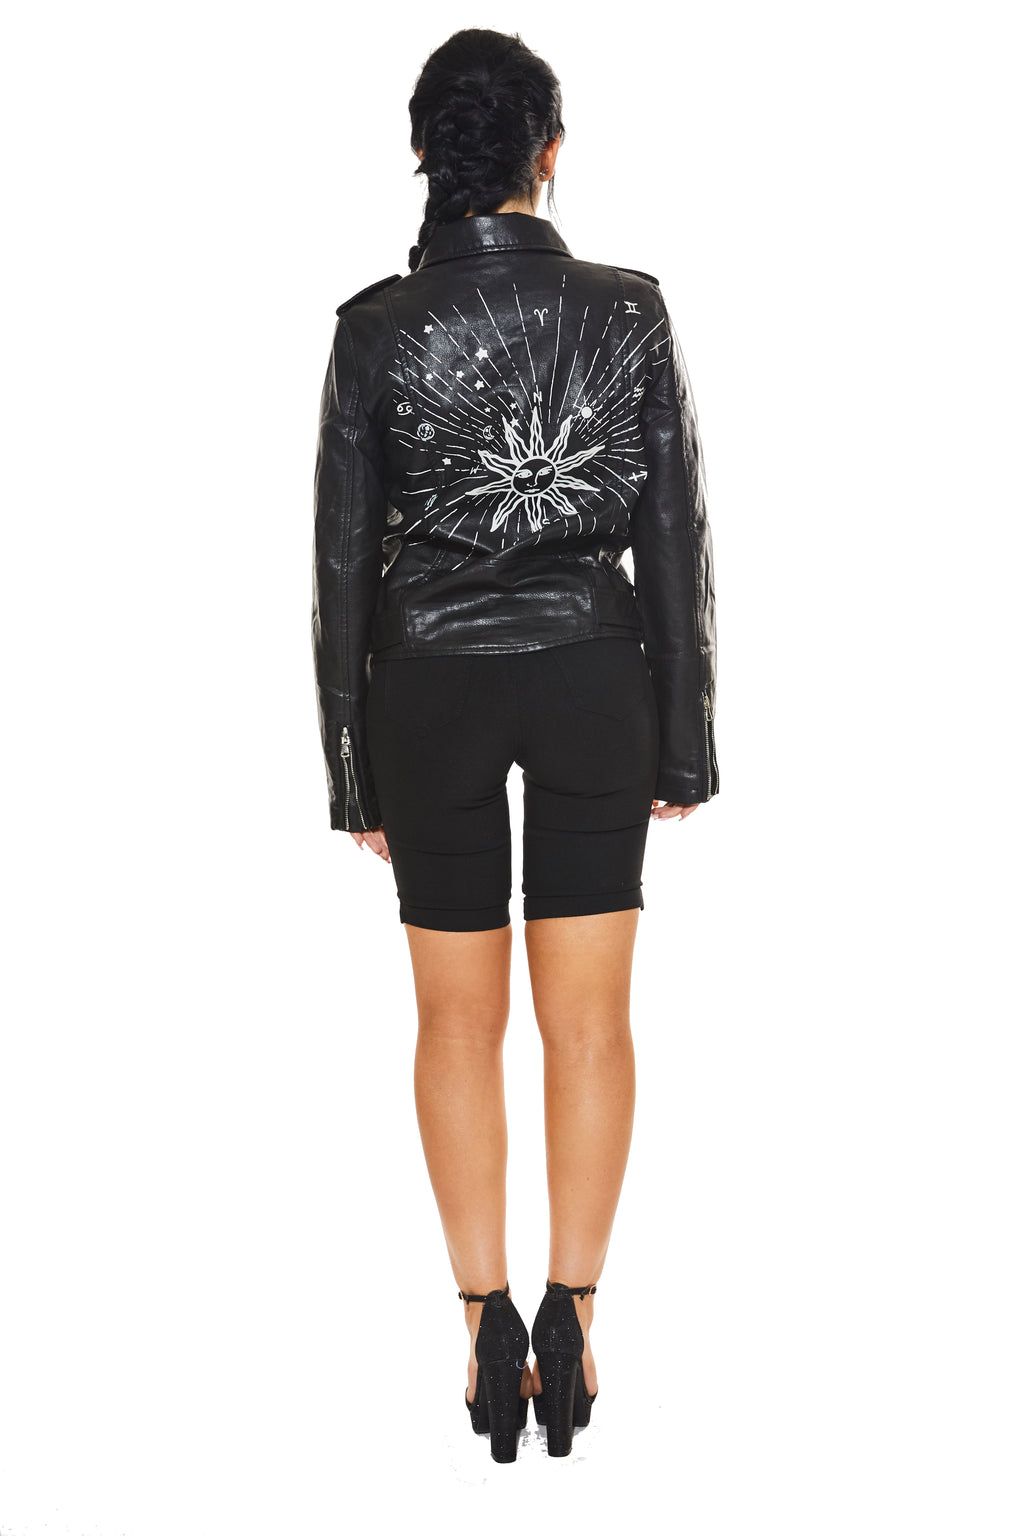 DEAD OR LIT?! - Leather Jacket - www.prettyboutique.com